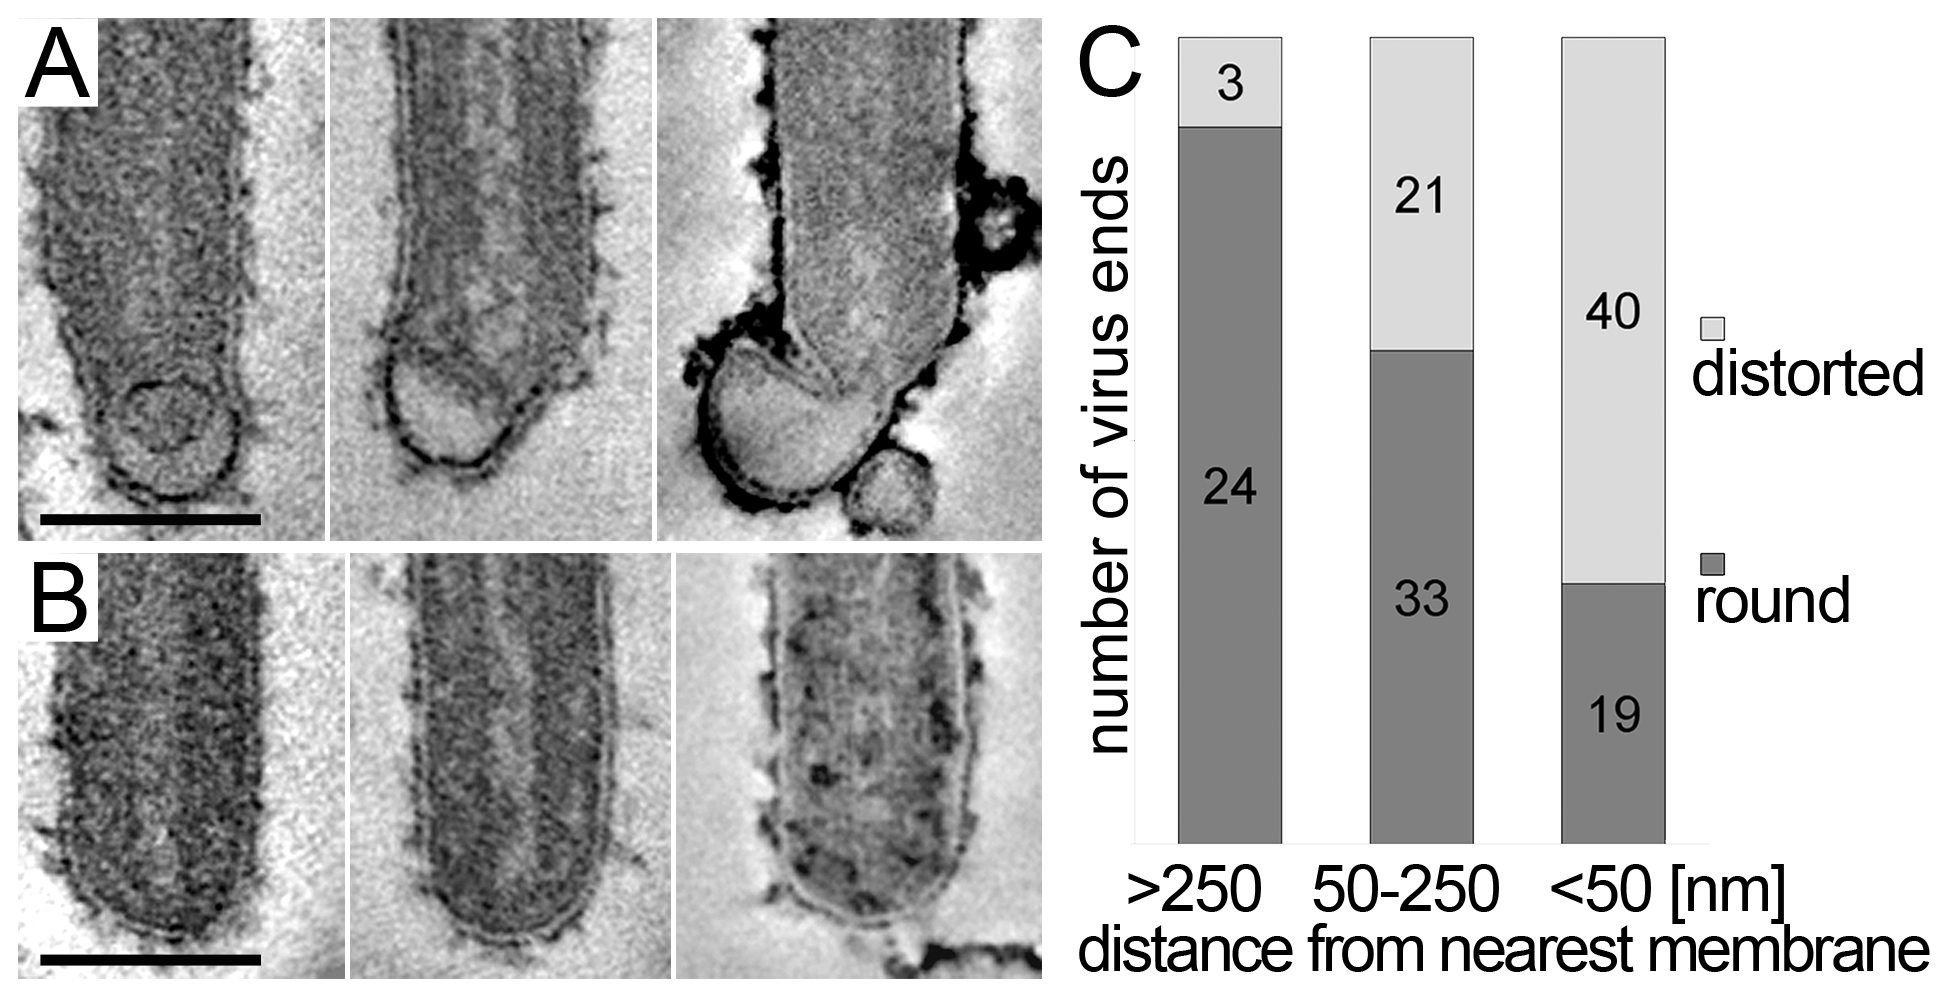 Membrane distortions are found at the rear end of filamentous MARV particles.